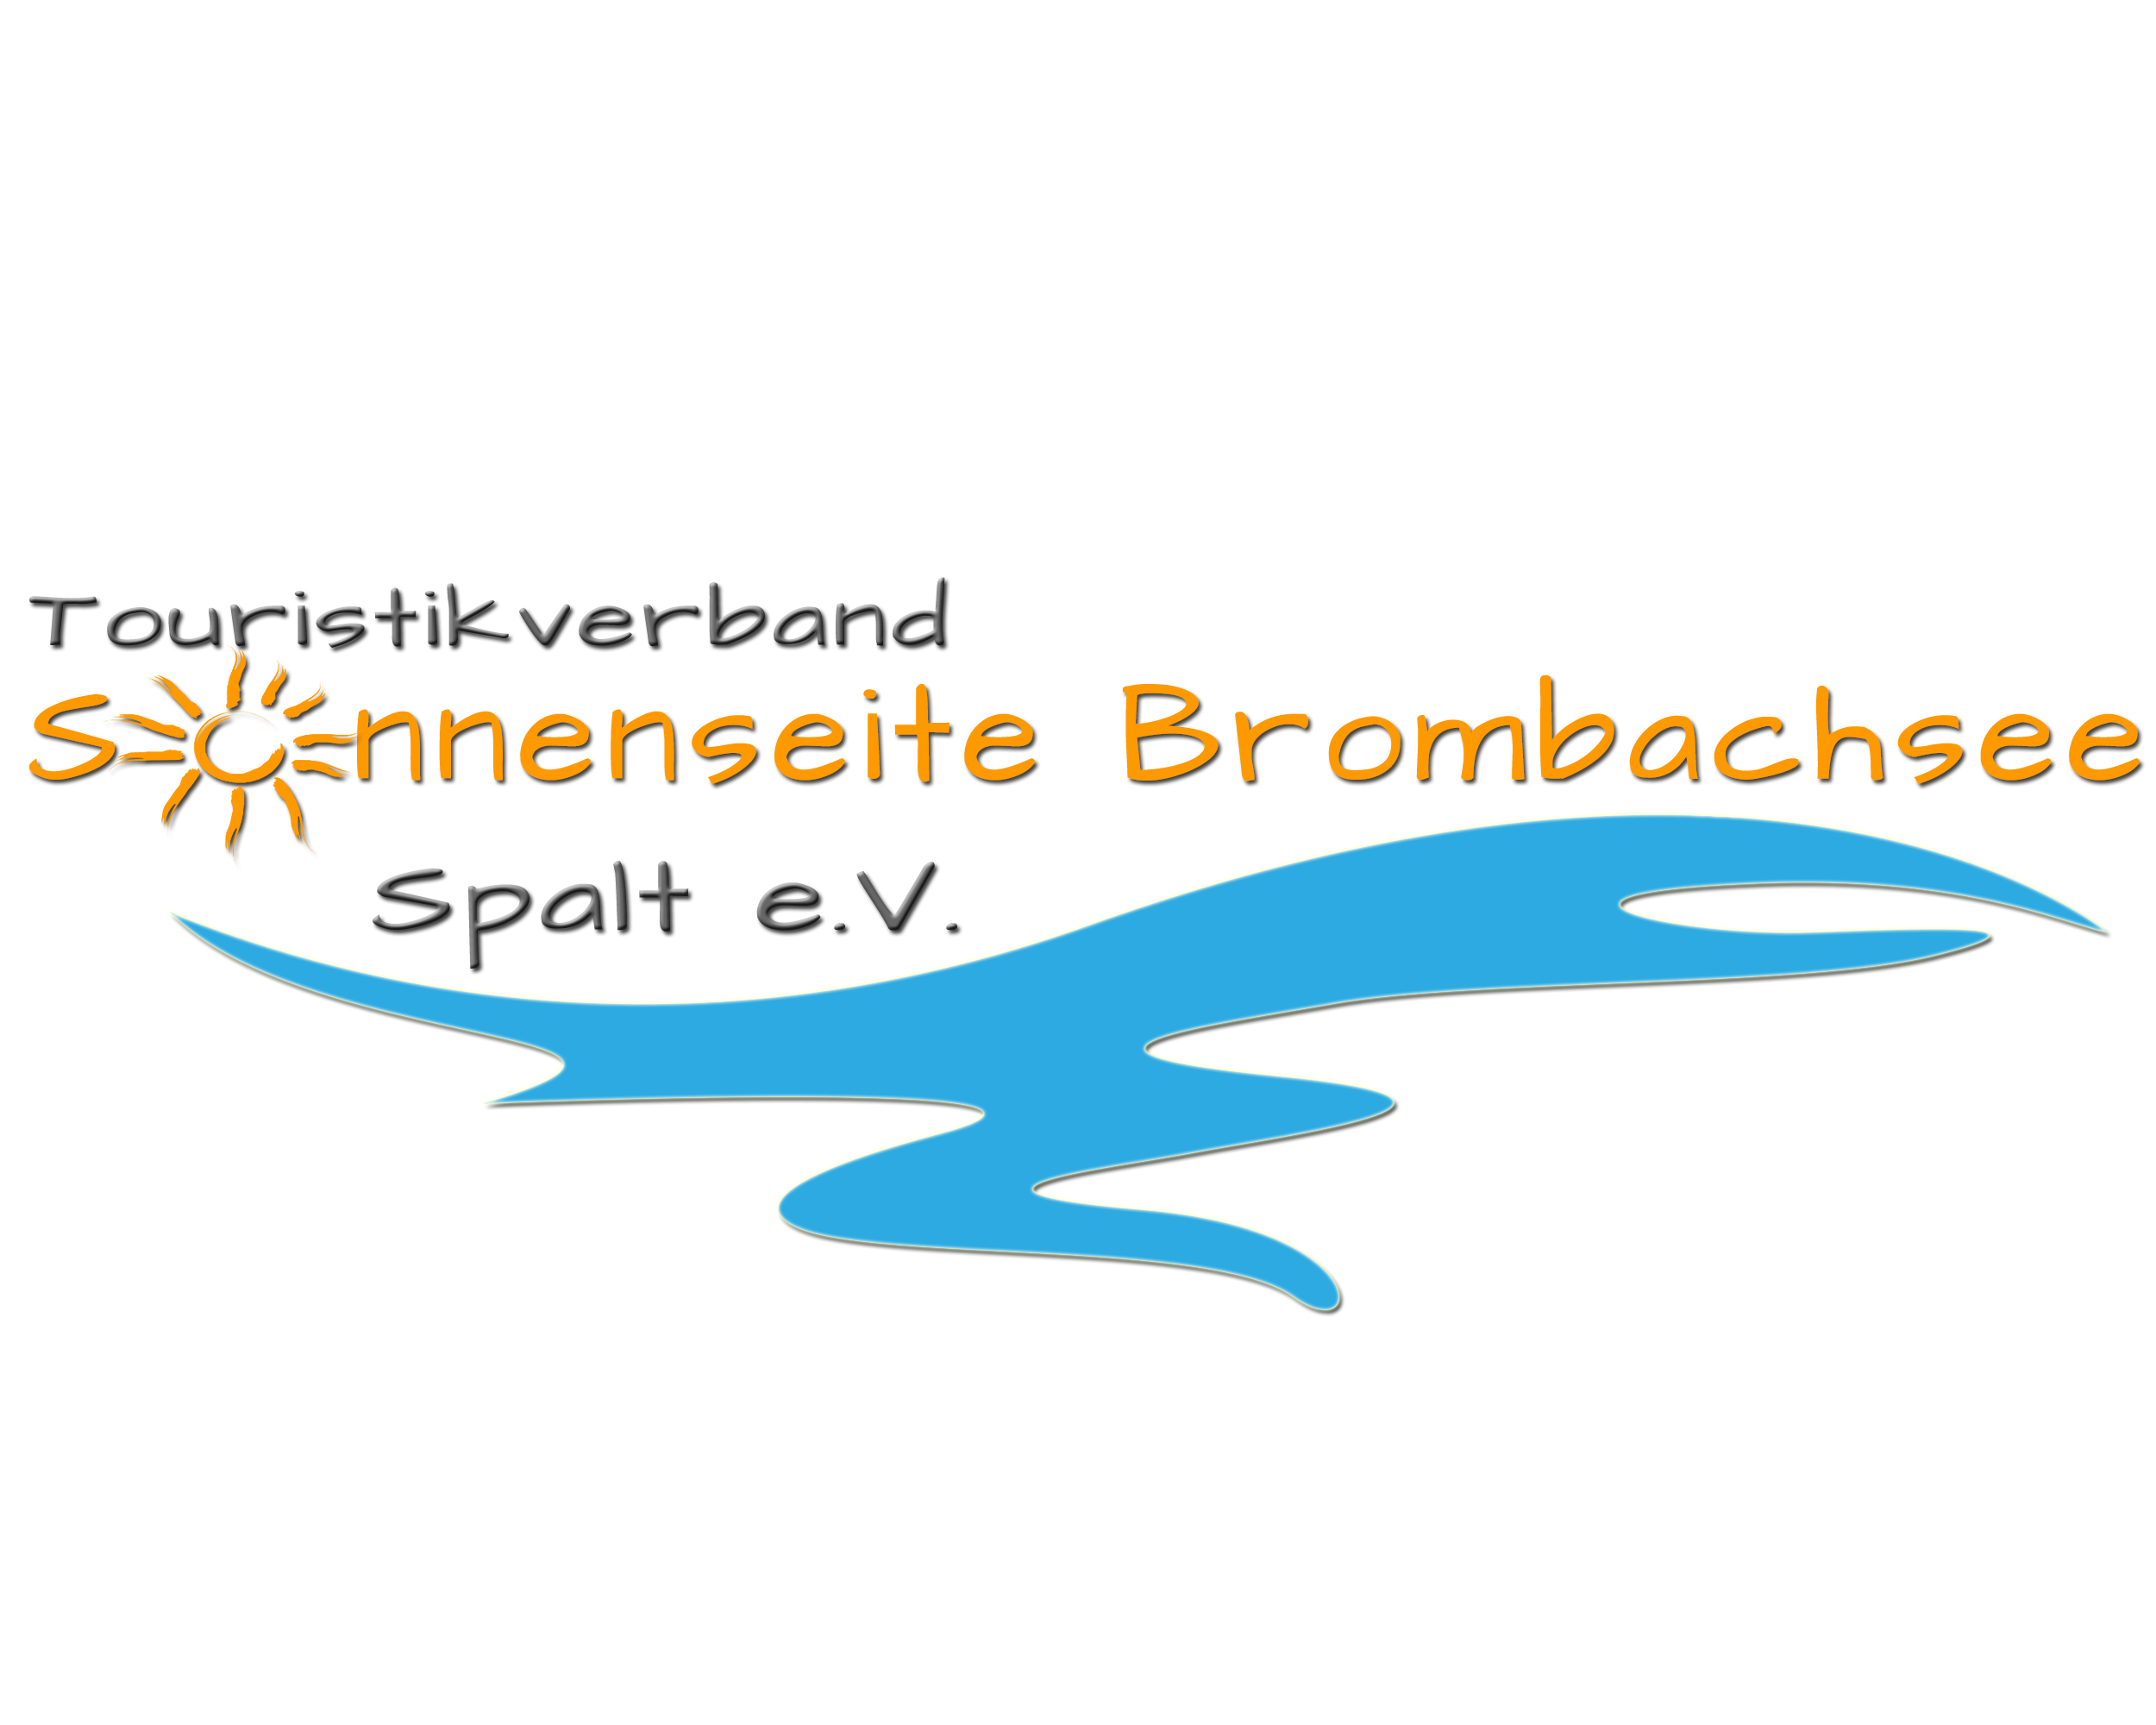 Touristikverband Sonnenseite Brombachsee